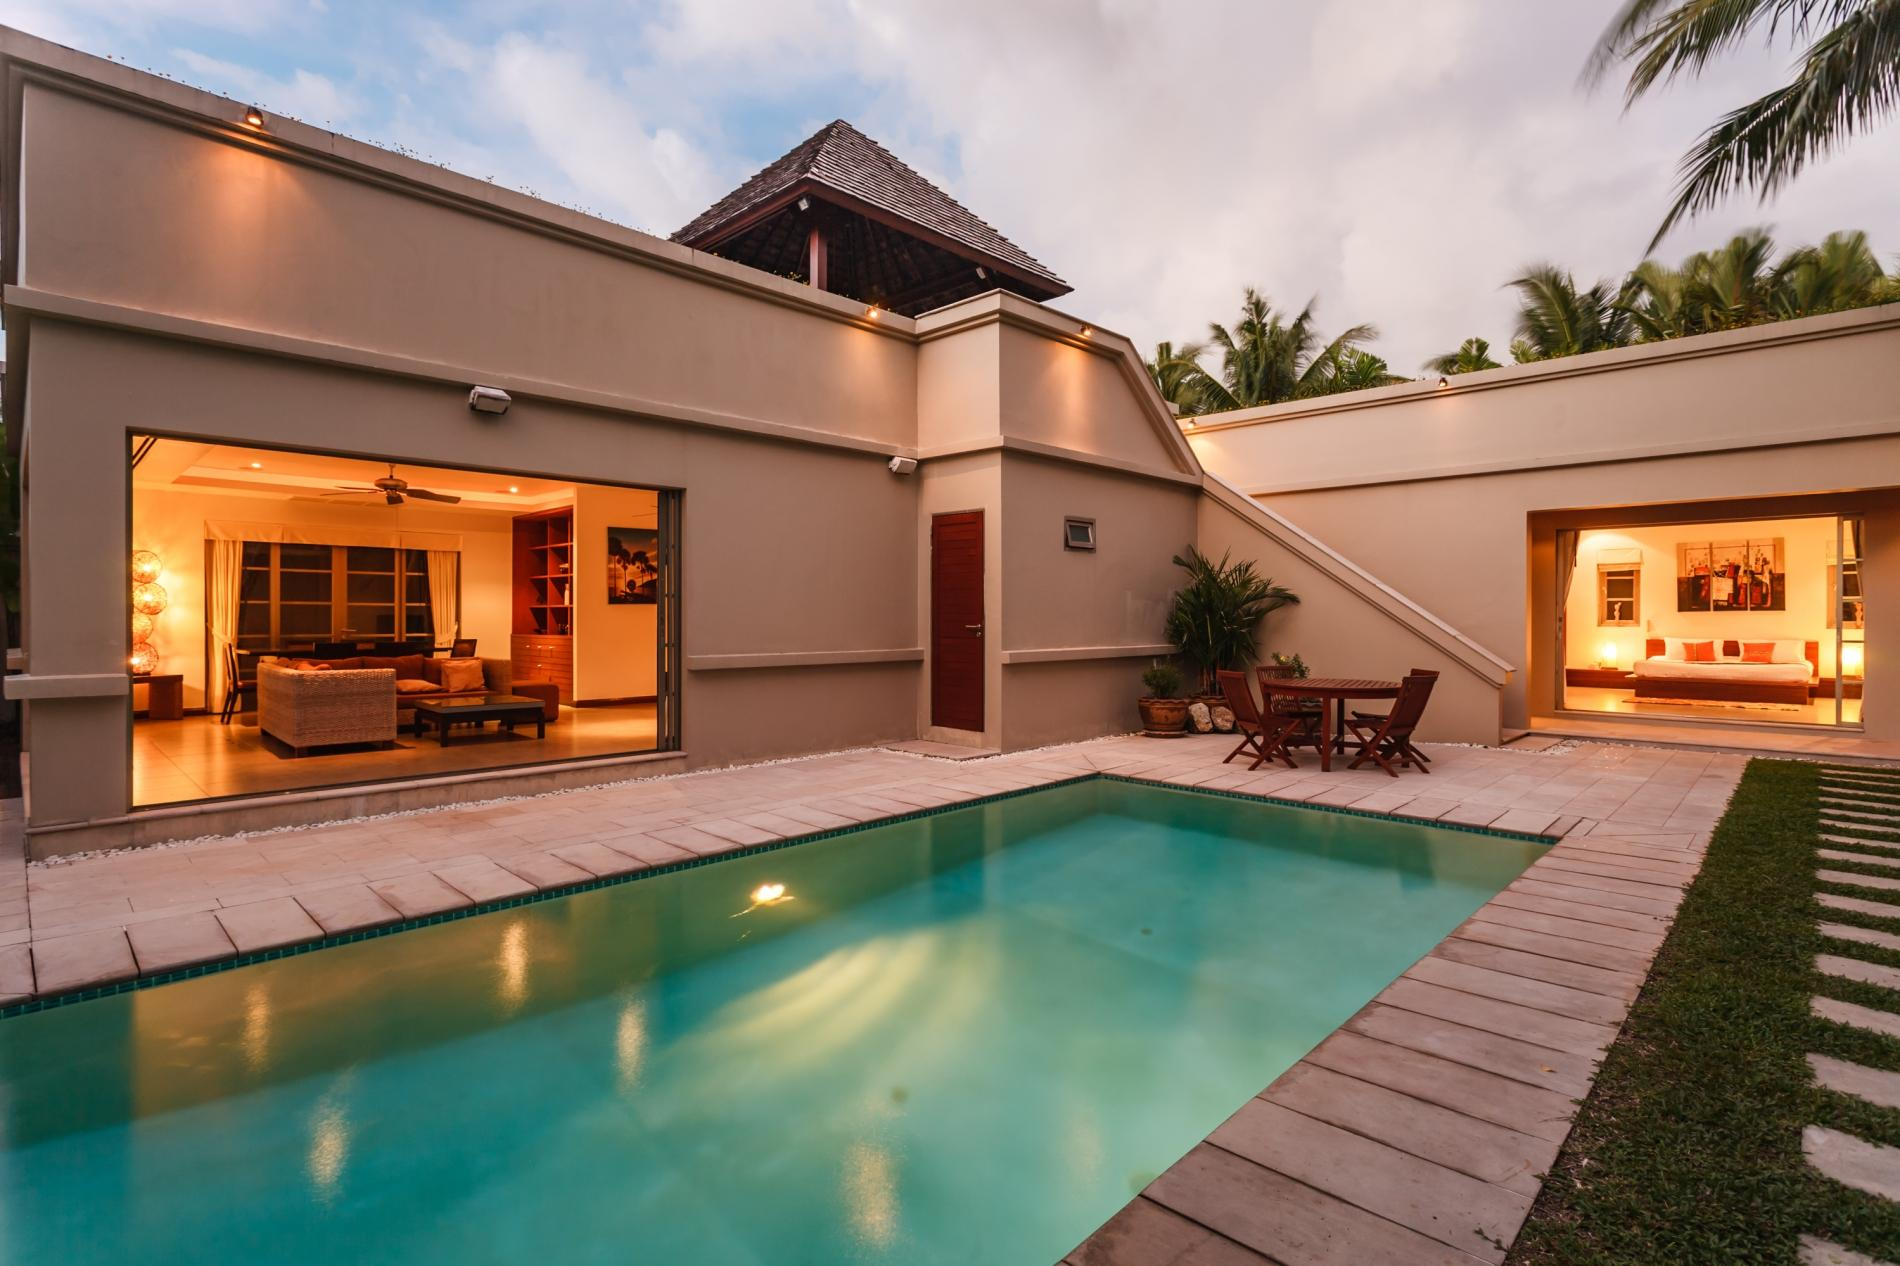 Apartment TR111 - Private pool villa in Bang Tao Residence - 3 bedrooms photo 16937515